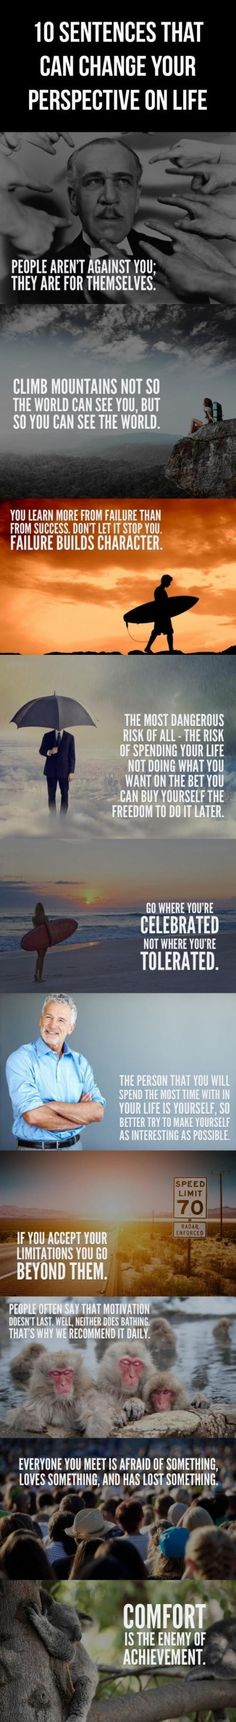 Everyone of these mottos is good practical advice that can kickstart an AWESOME new life!